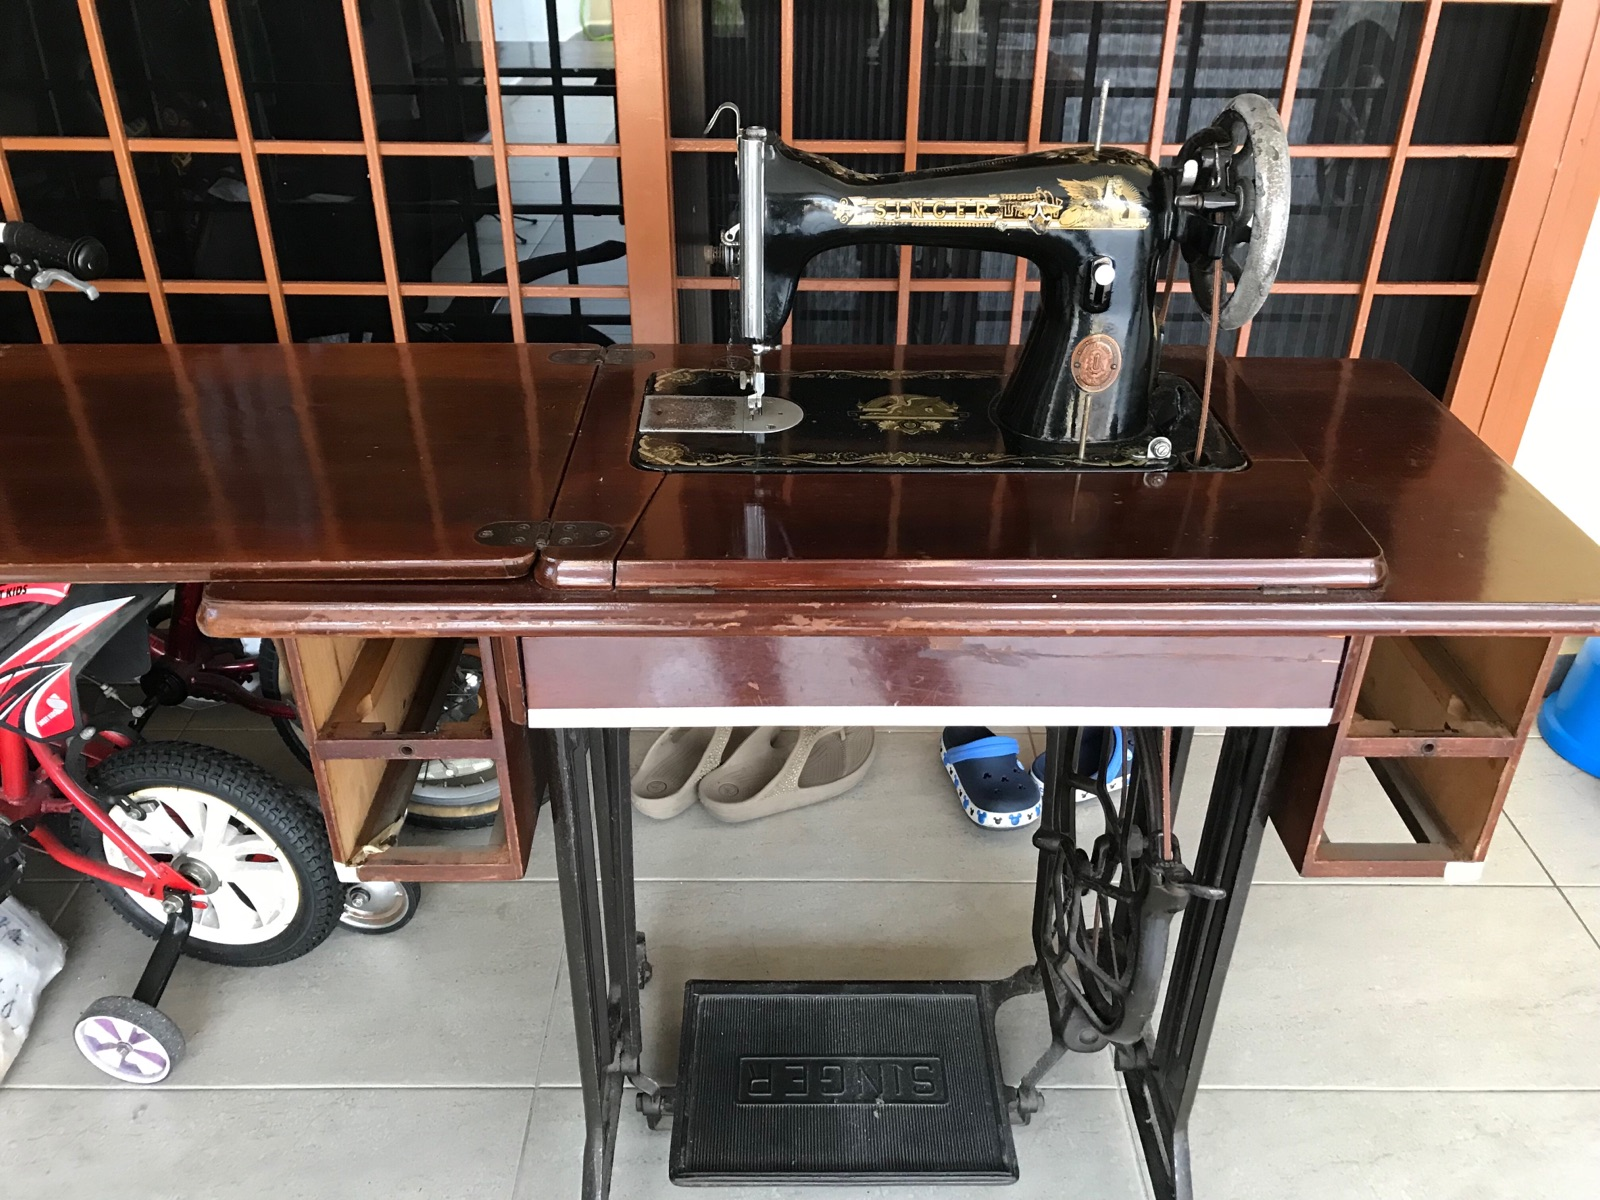 Sevis Singer Olw Sewing Machine